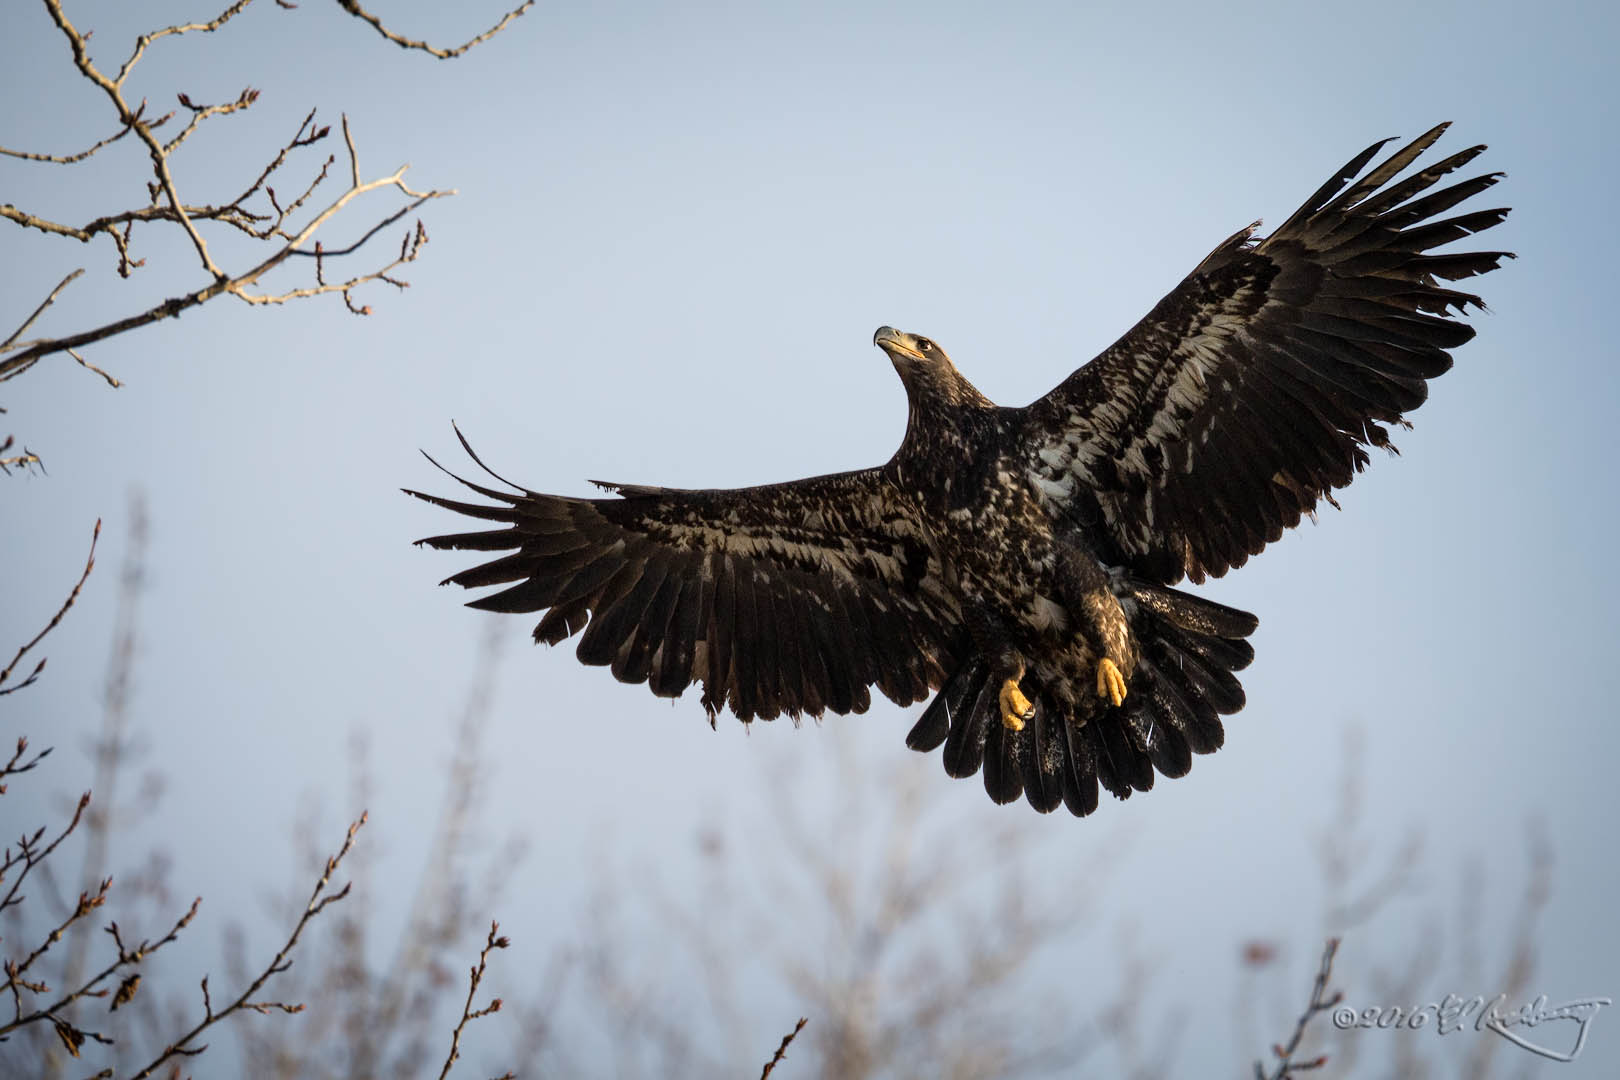 Juvenile Bald Eagle aproaching perch